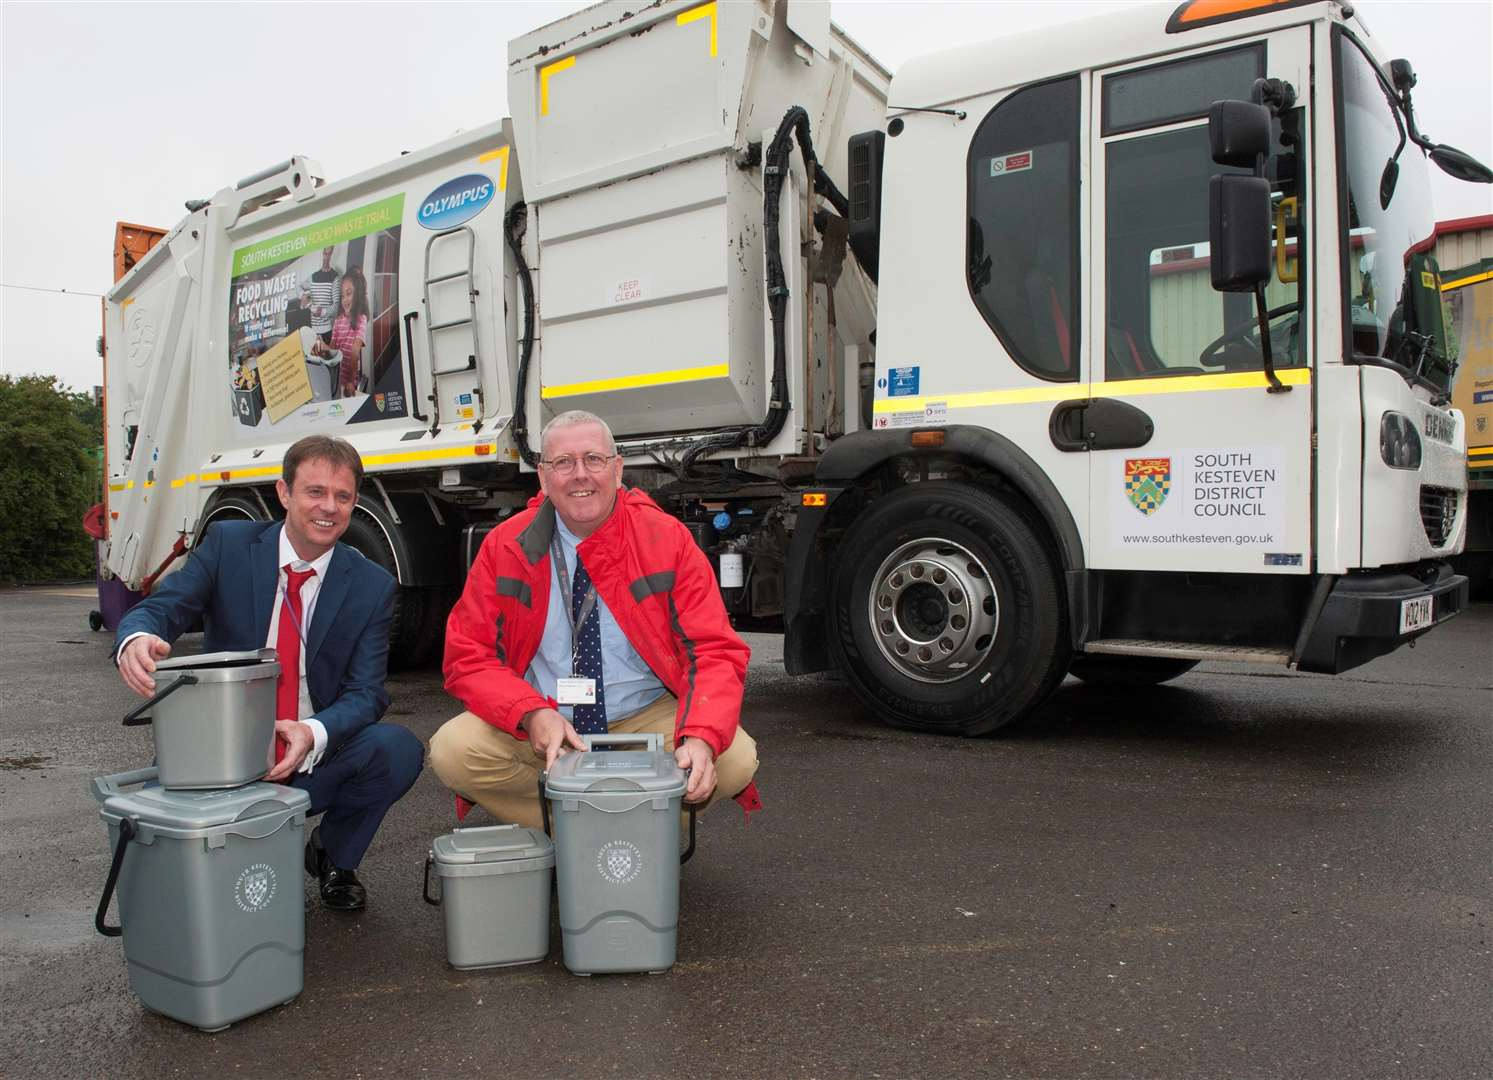 The SKDC Cabinet Member for Environment, Cllr Dr Peter Moseley (right), andLincolnshire County Council's Assistant Portfolio Holder for Commercial and EnvironmentalManagement, Councillor Daniel McNally, with the new food waste collection vehicle. (2858166)